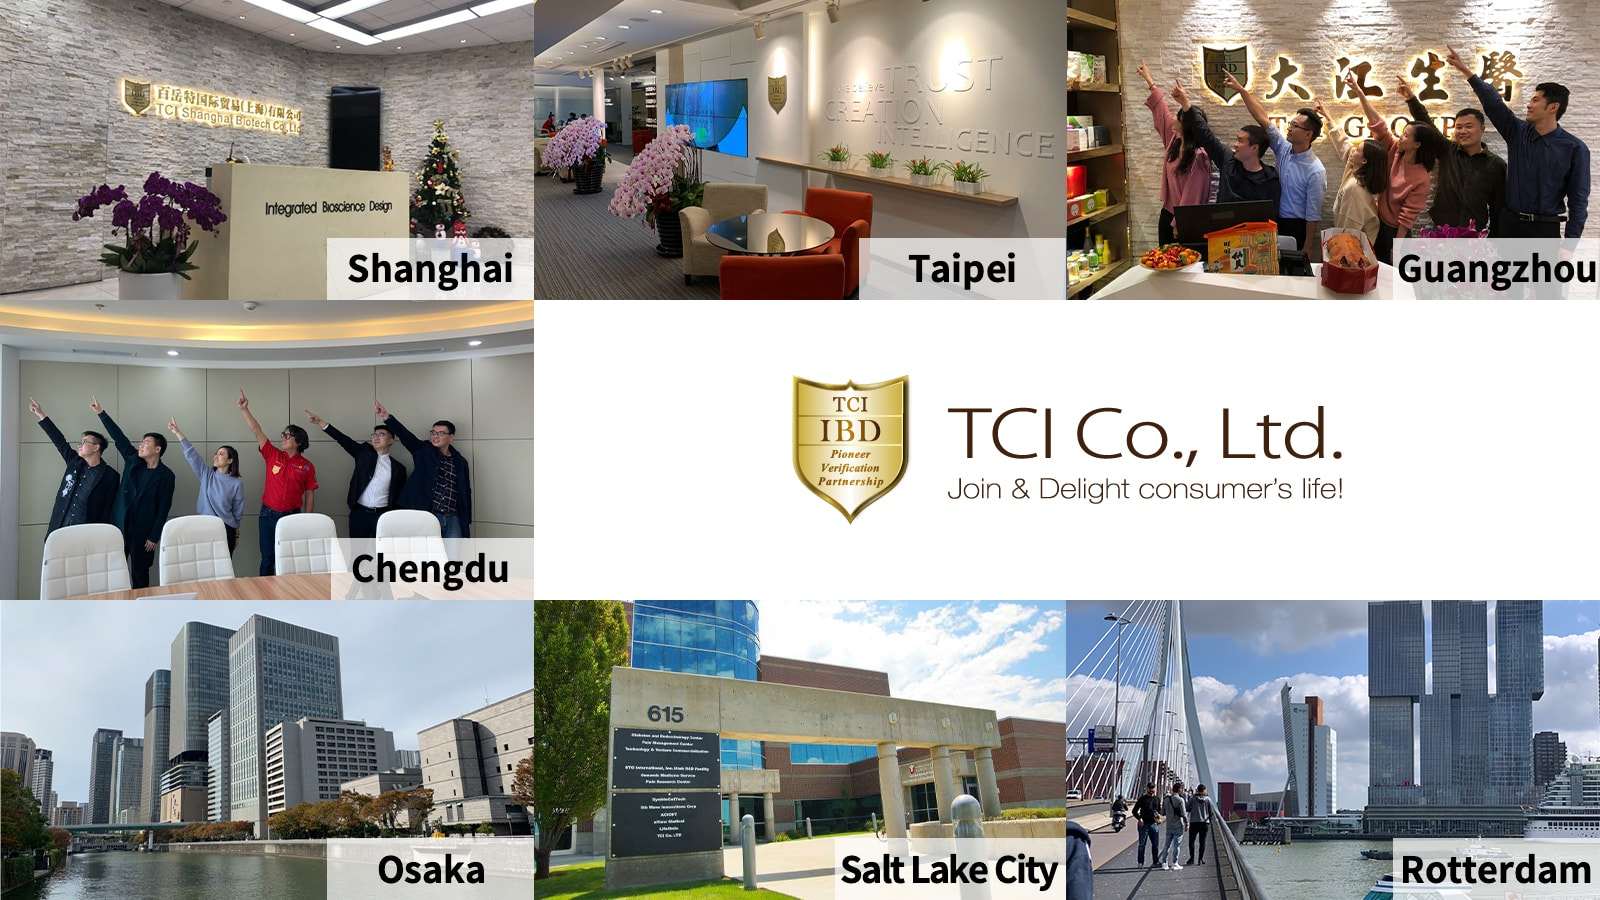 TCI Shanghai office, Taipei office, Guangzhou office, Chengdu office, Osaka office, SLC office, Rotterdam office